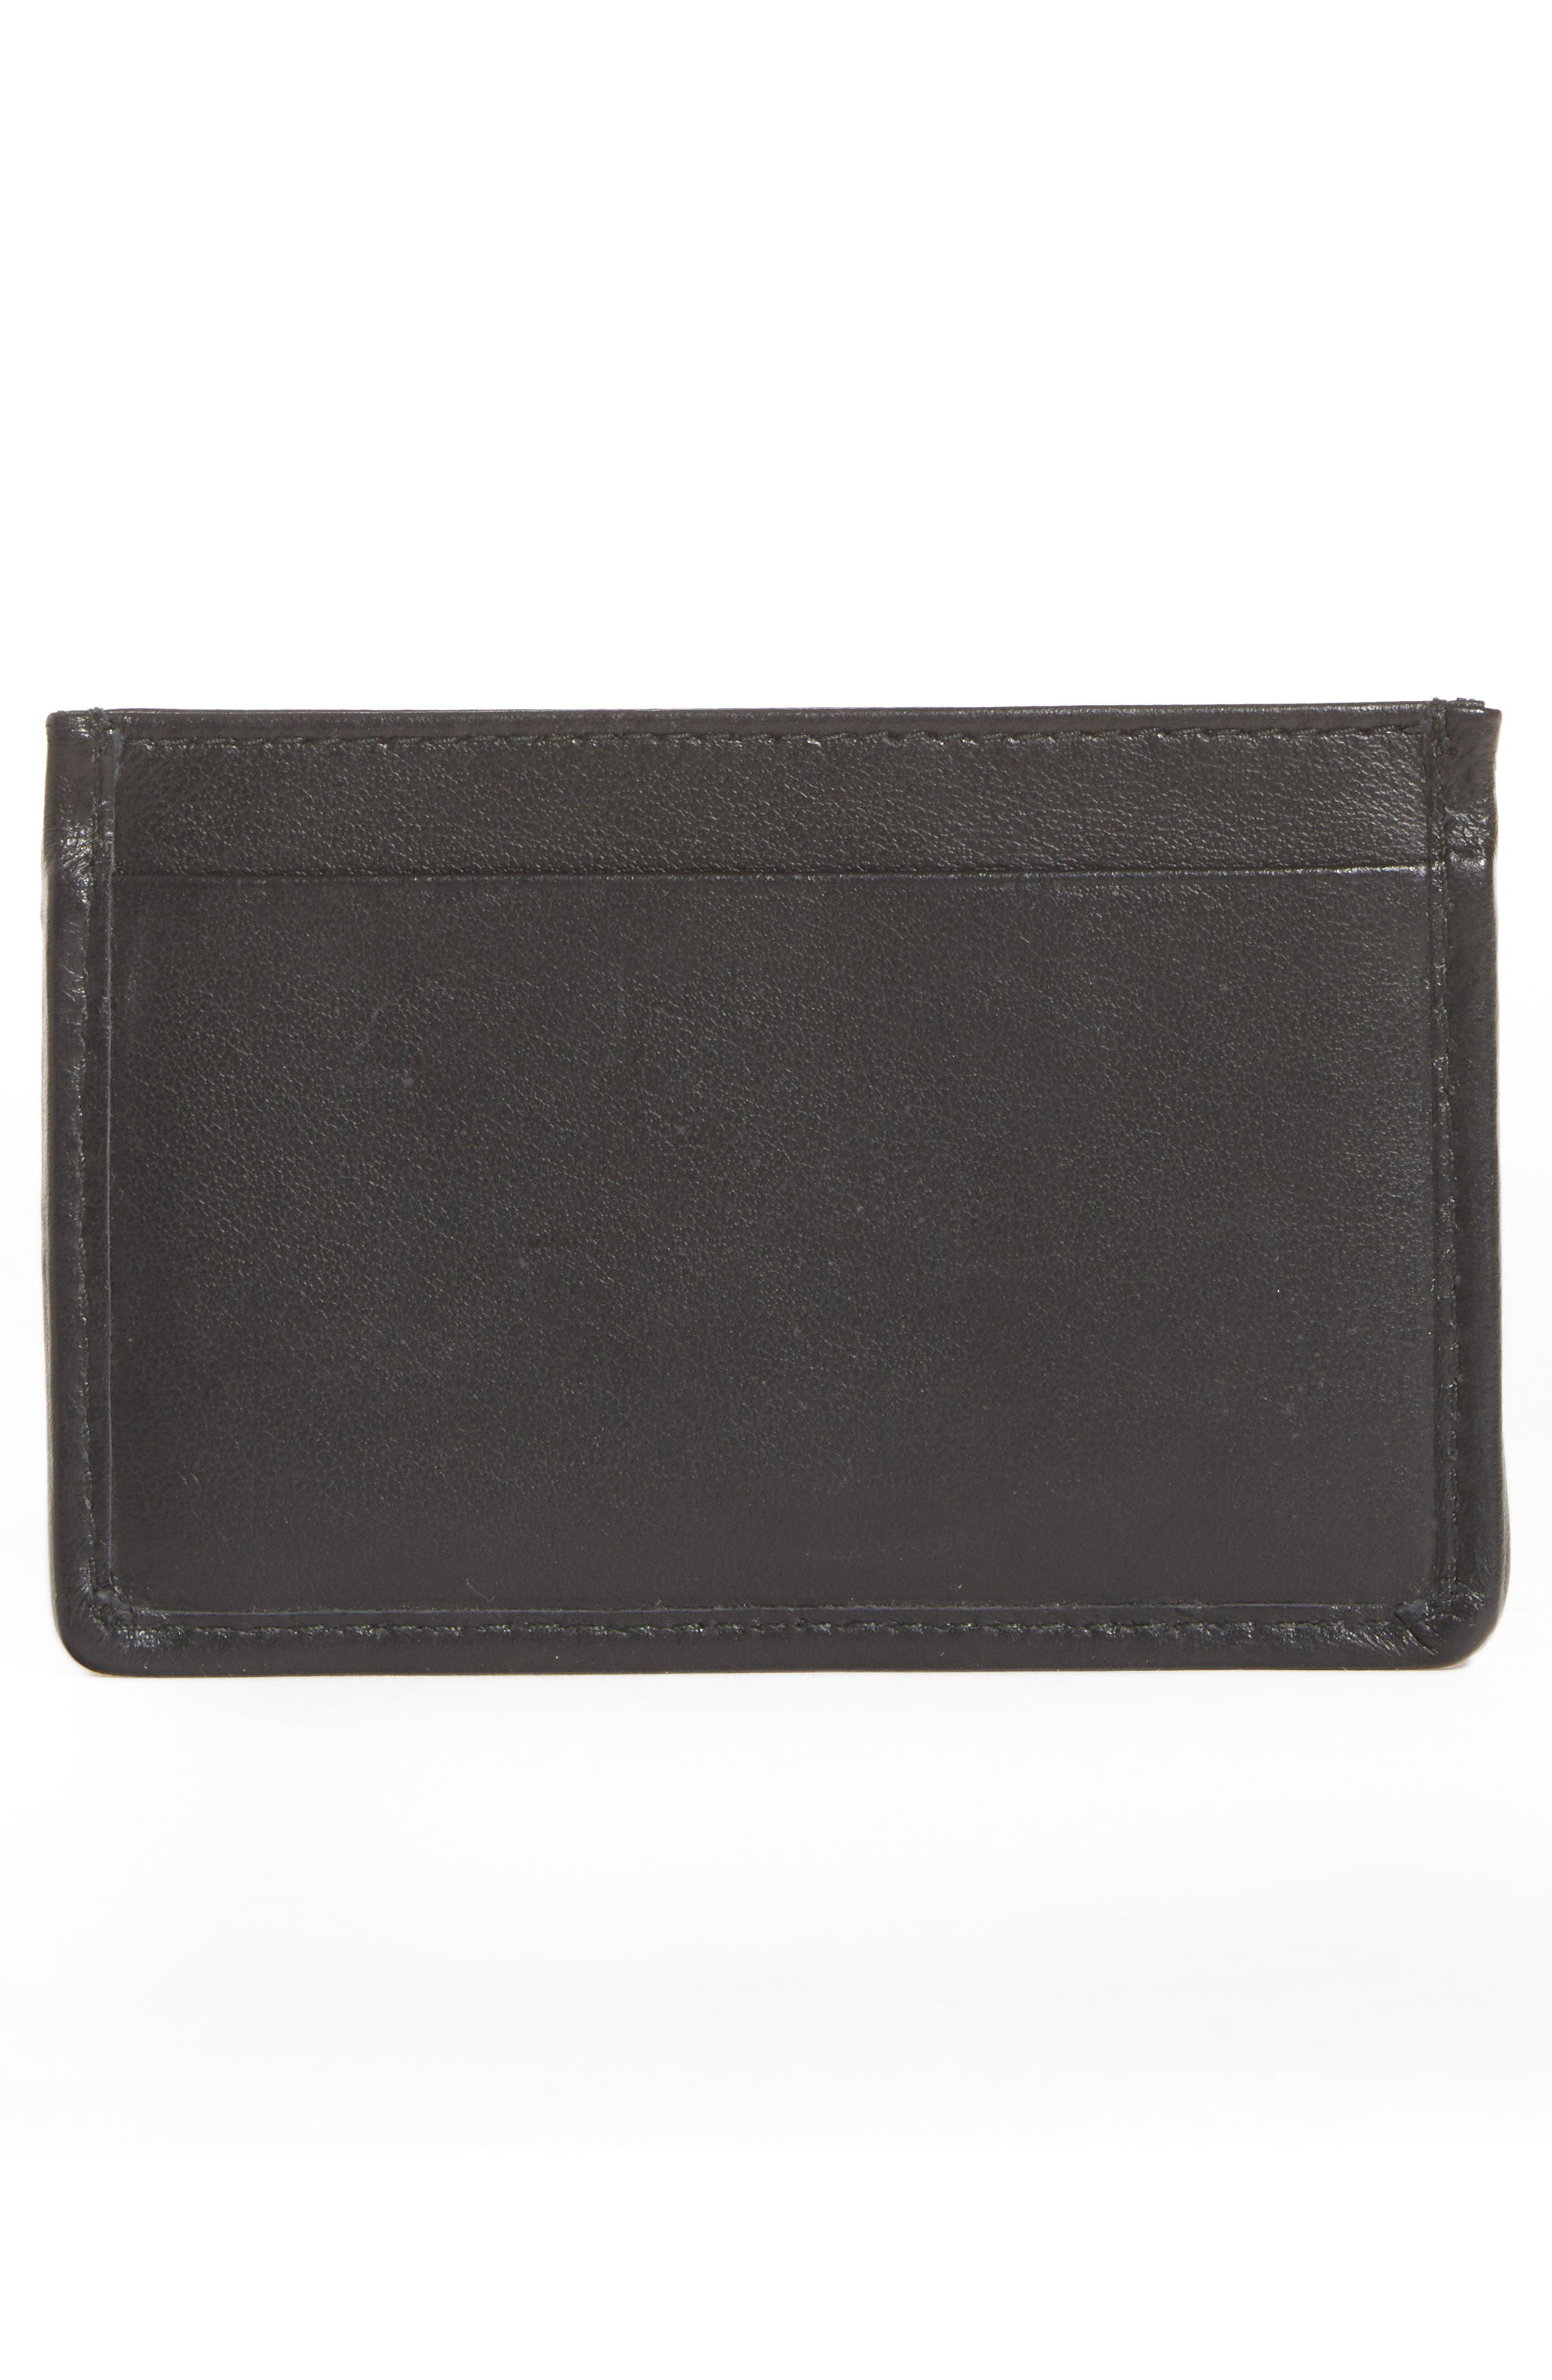 Quilted Leather Card Case,                             Alternate thumbnail 3, color,                             001